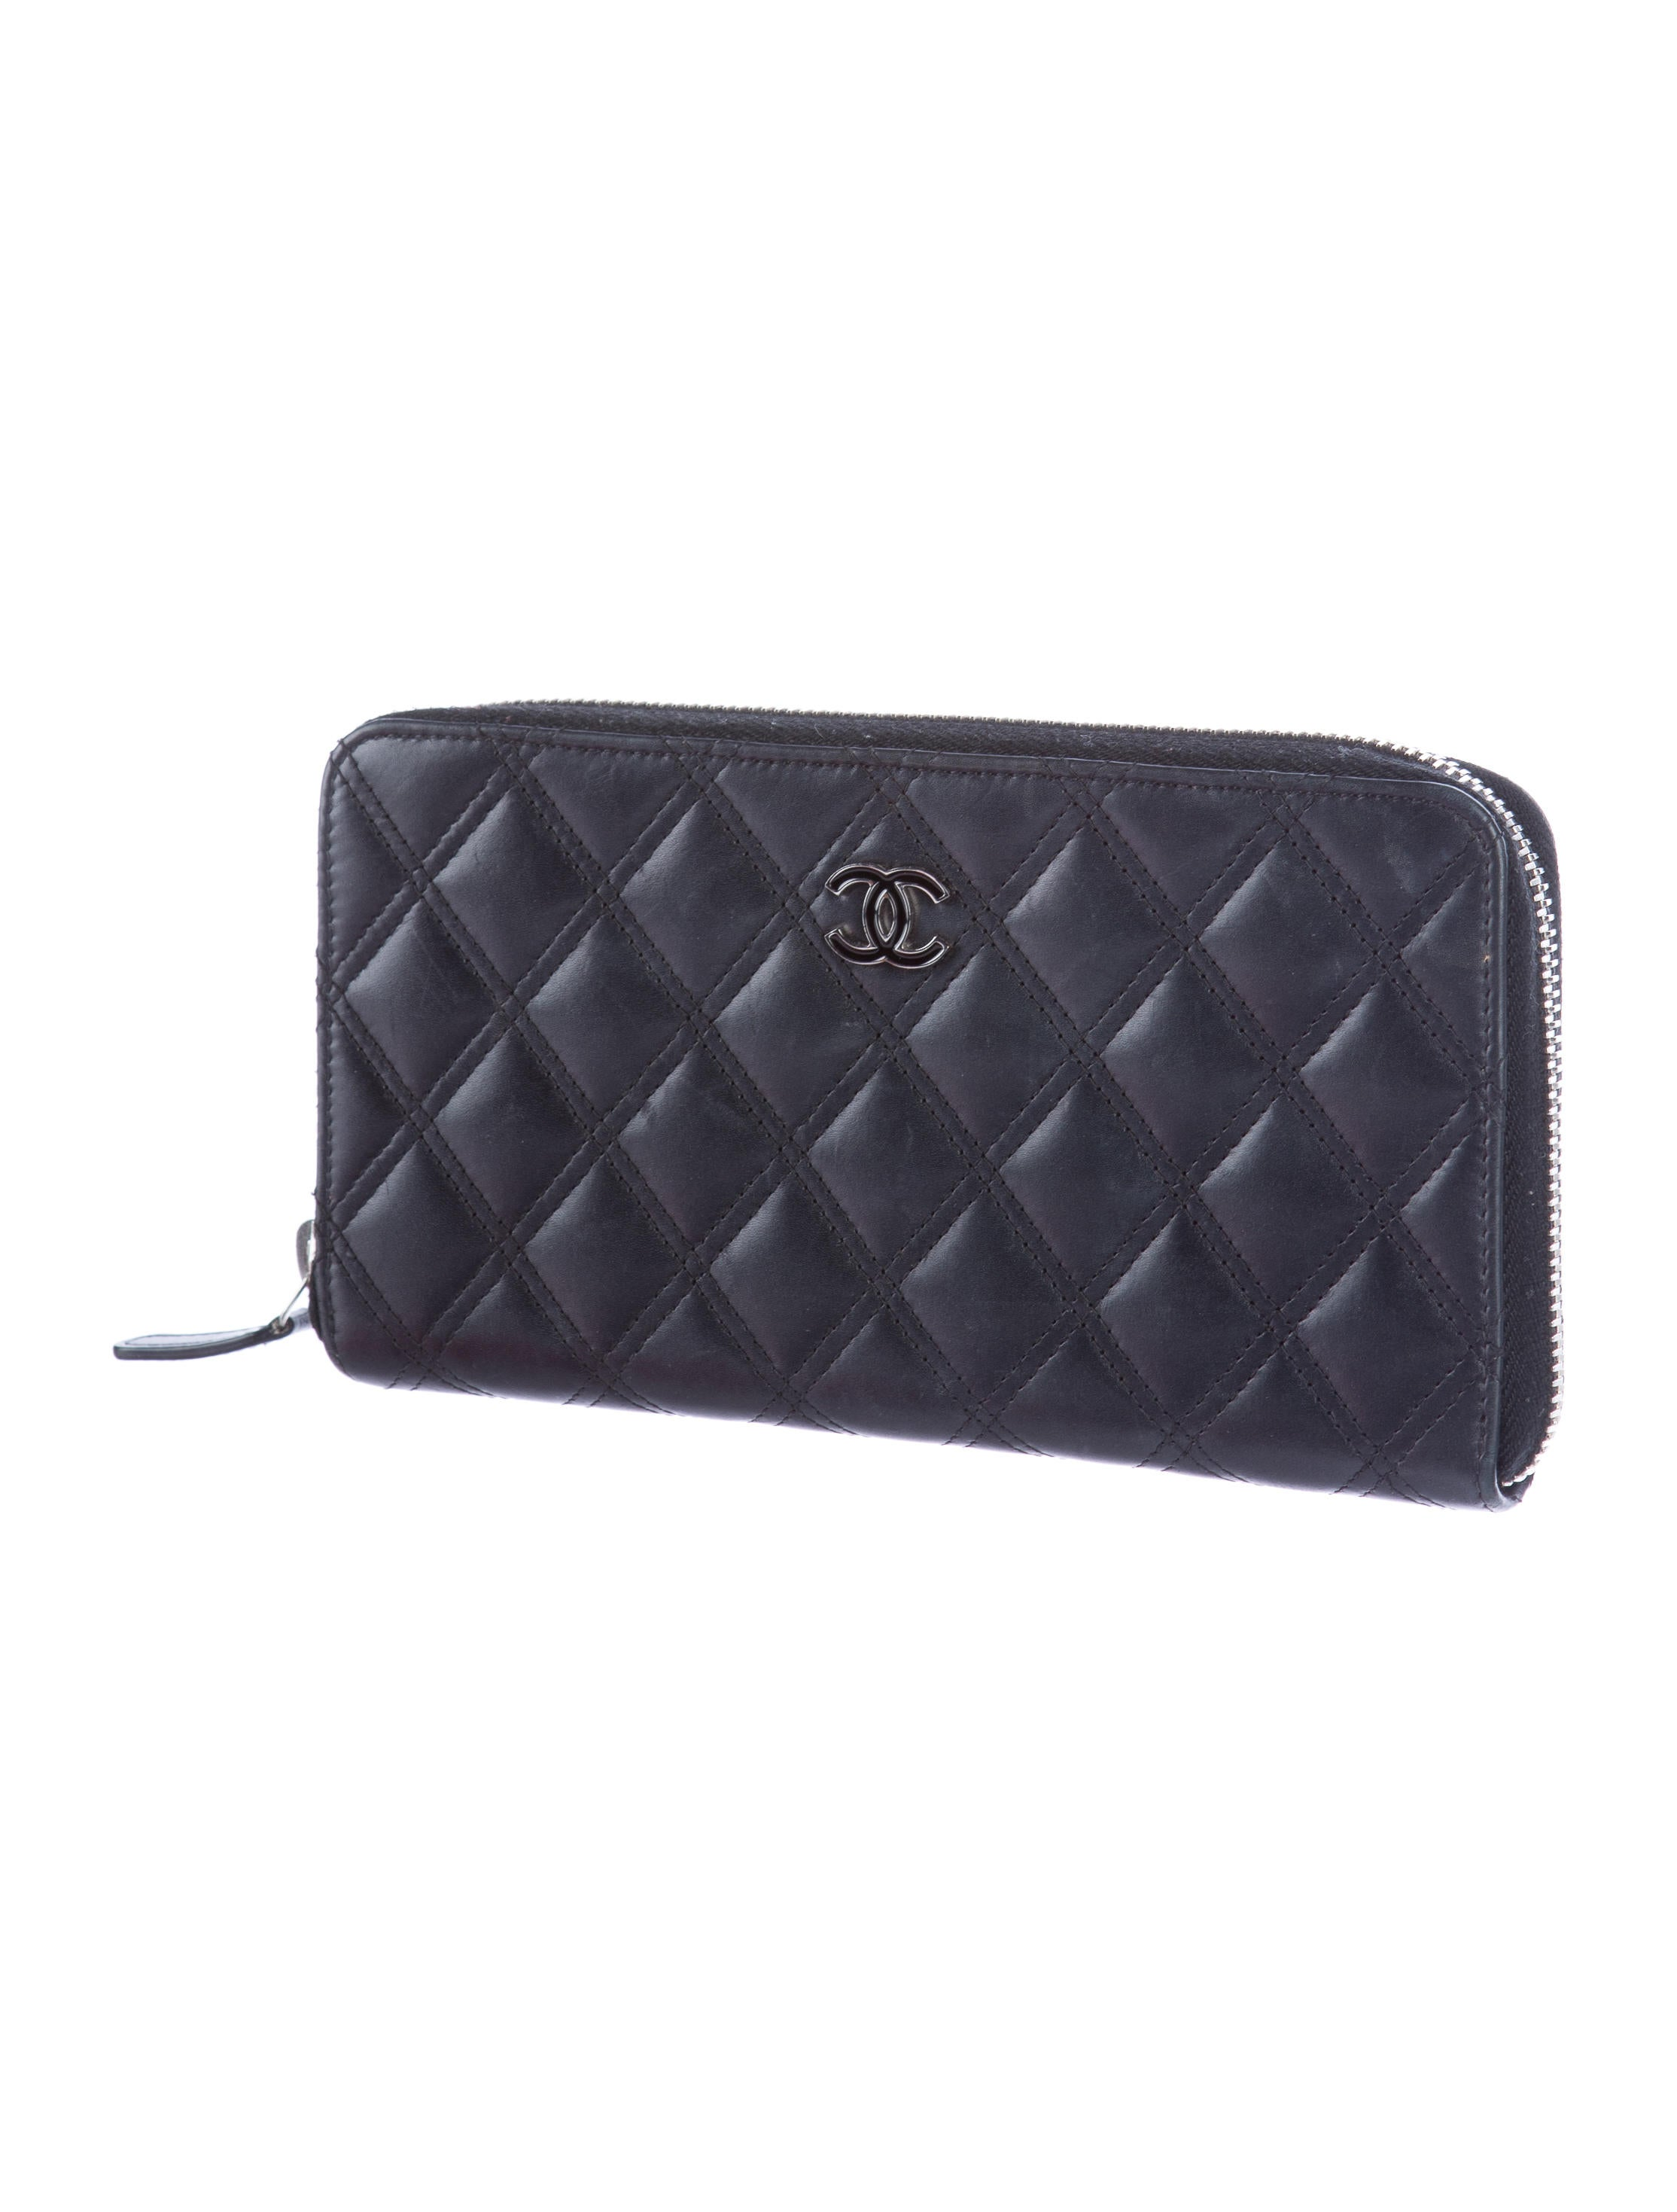 6706cc5bd715 Chanel L Gusset Wallet | Stanford Center for Opportunity Policy in ...